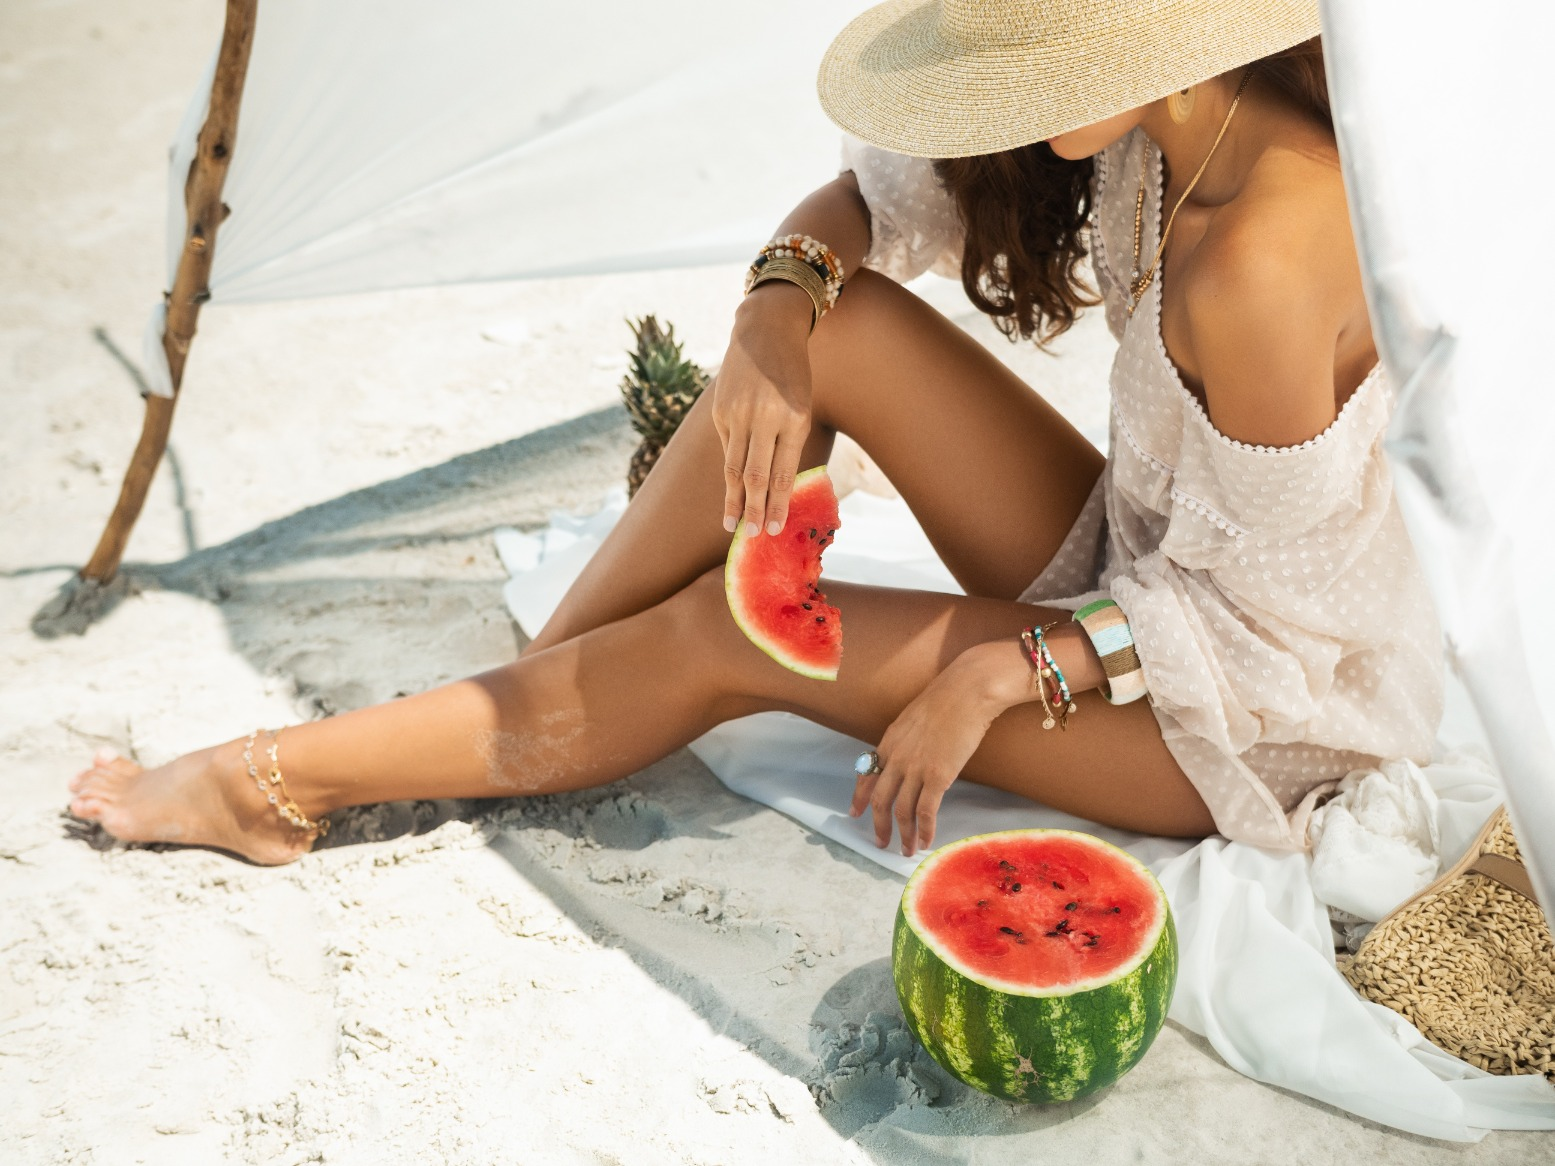 woman-on-the-beach-eating-watermelon-outdoors-UQF5TRT (1) (1) (1)